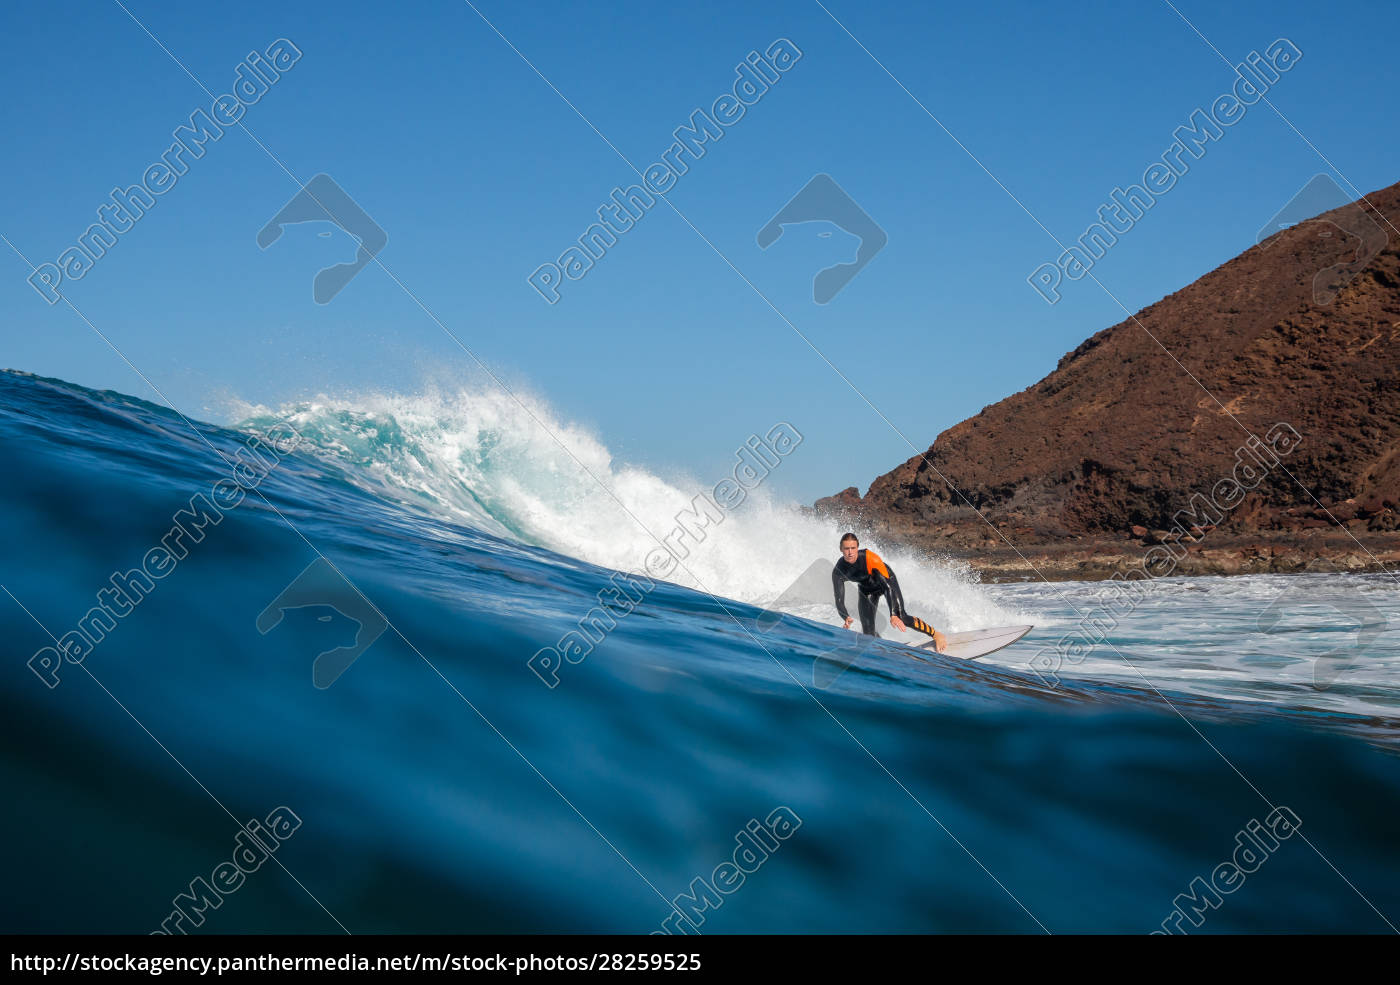 surfer, riding, waves, on, the, island - 28259525